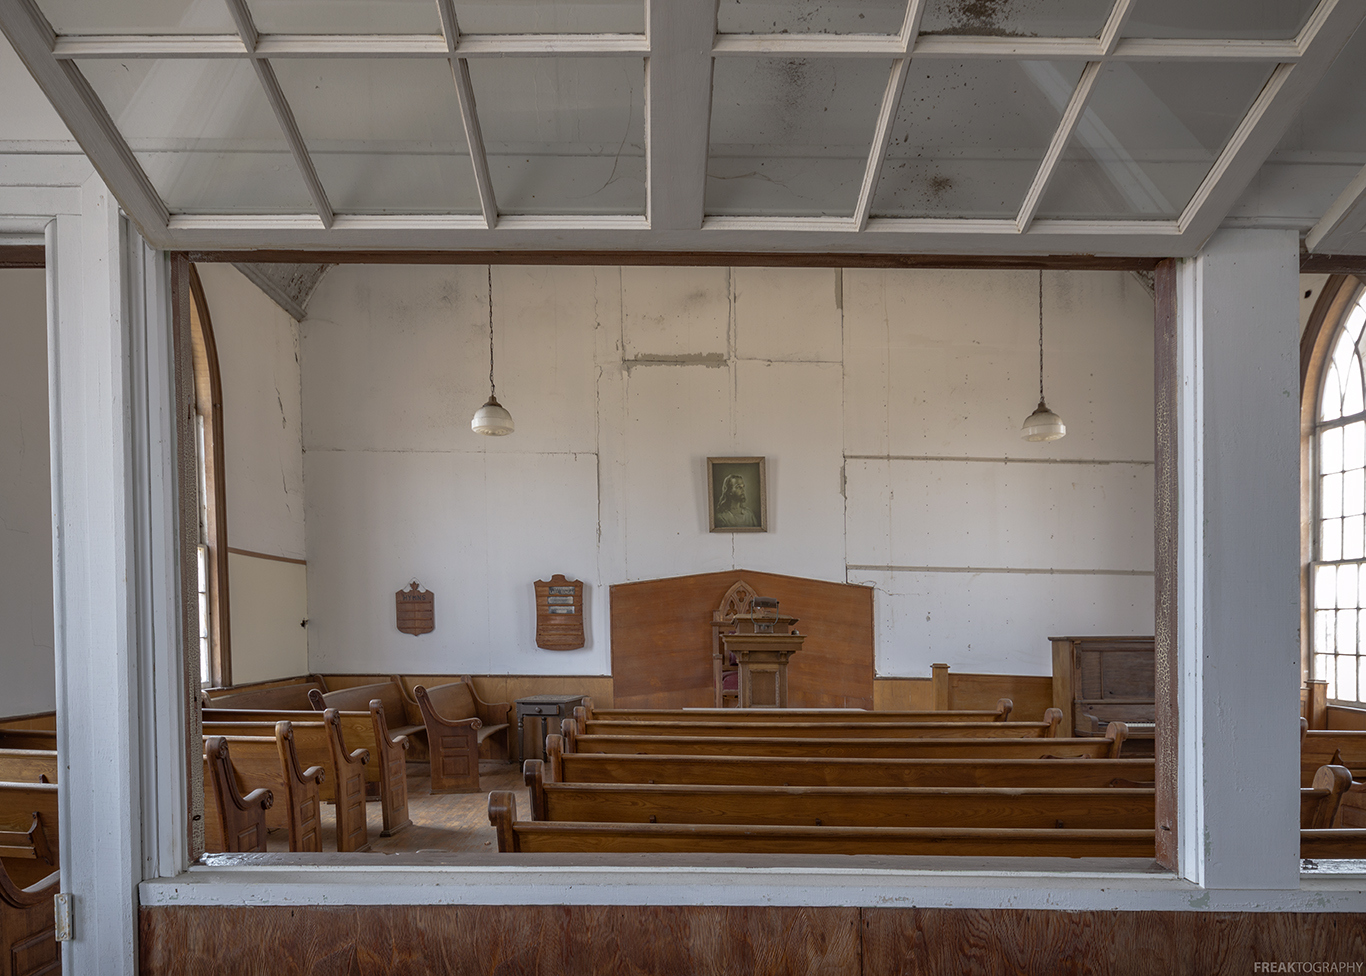 abandoned ontario church by freaktography, Freaktography, abandoned, abandoned photography, abandoned places, creepy, decay, derelict, haunted, haunted places, photography, urban exploration, urban exploration photography, urban explorer, urban exploring